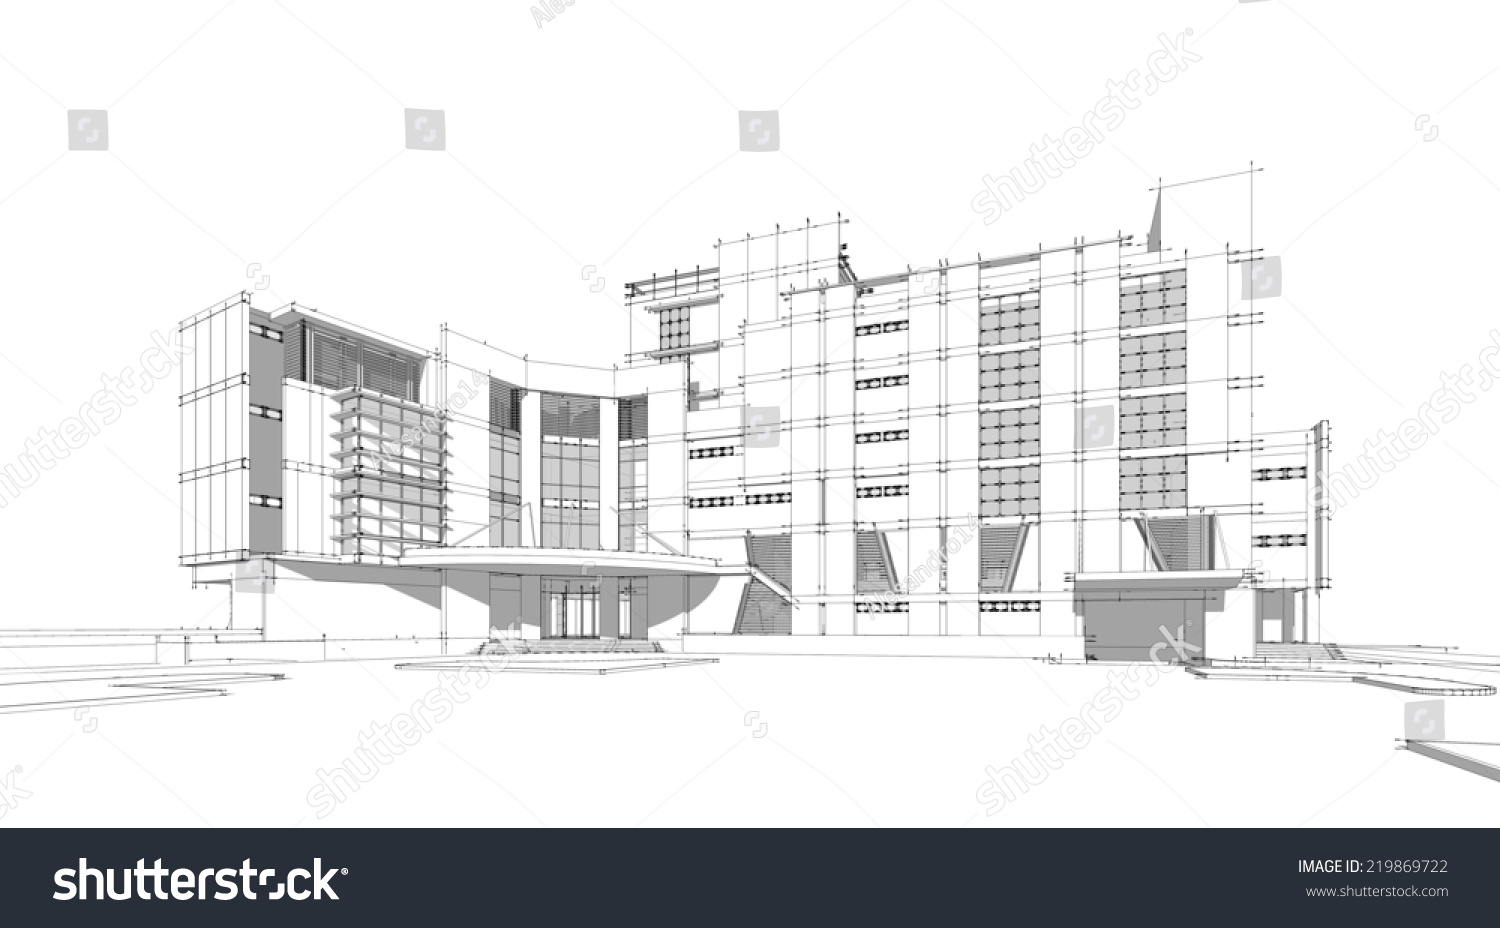 sketch idea perspective building wireframe vector stock illustration